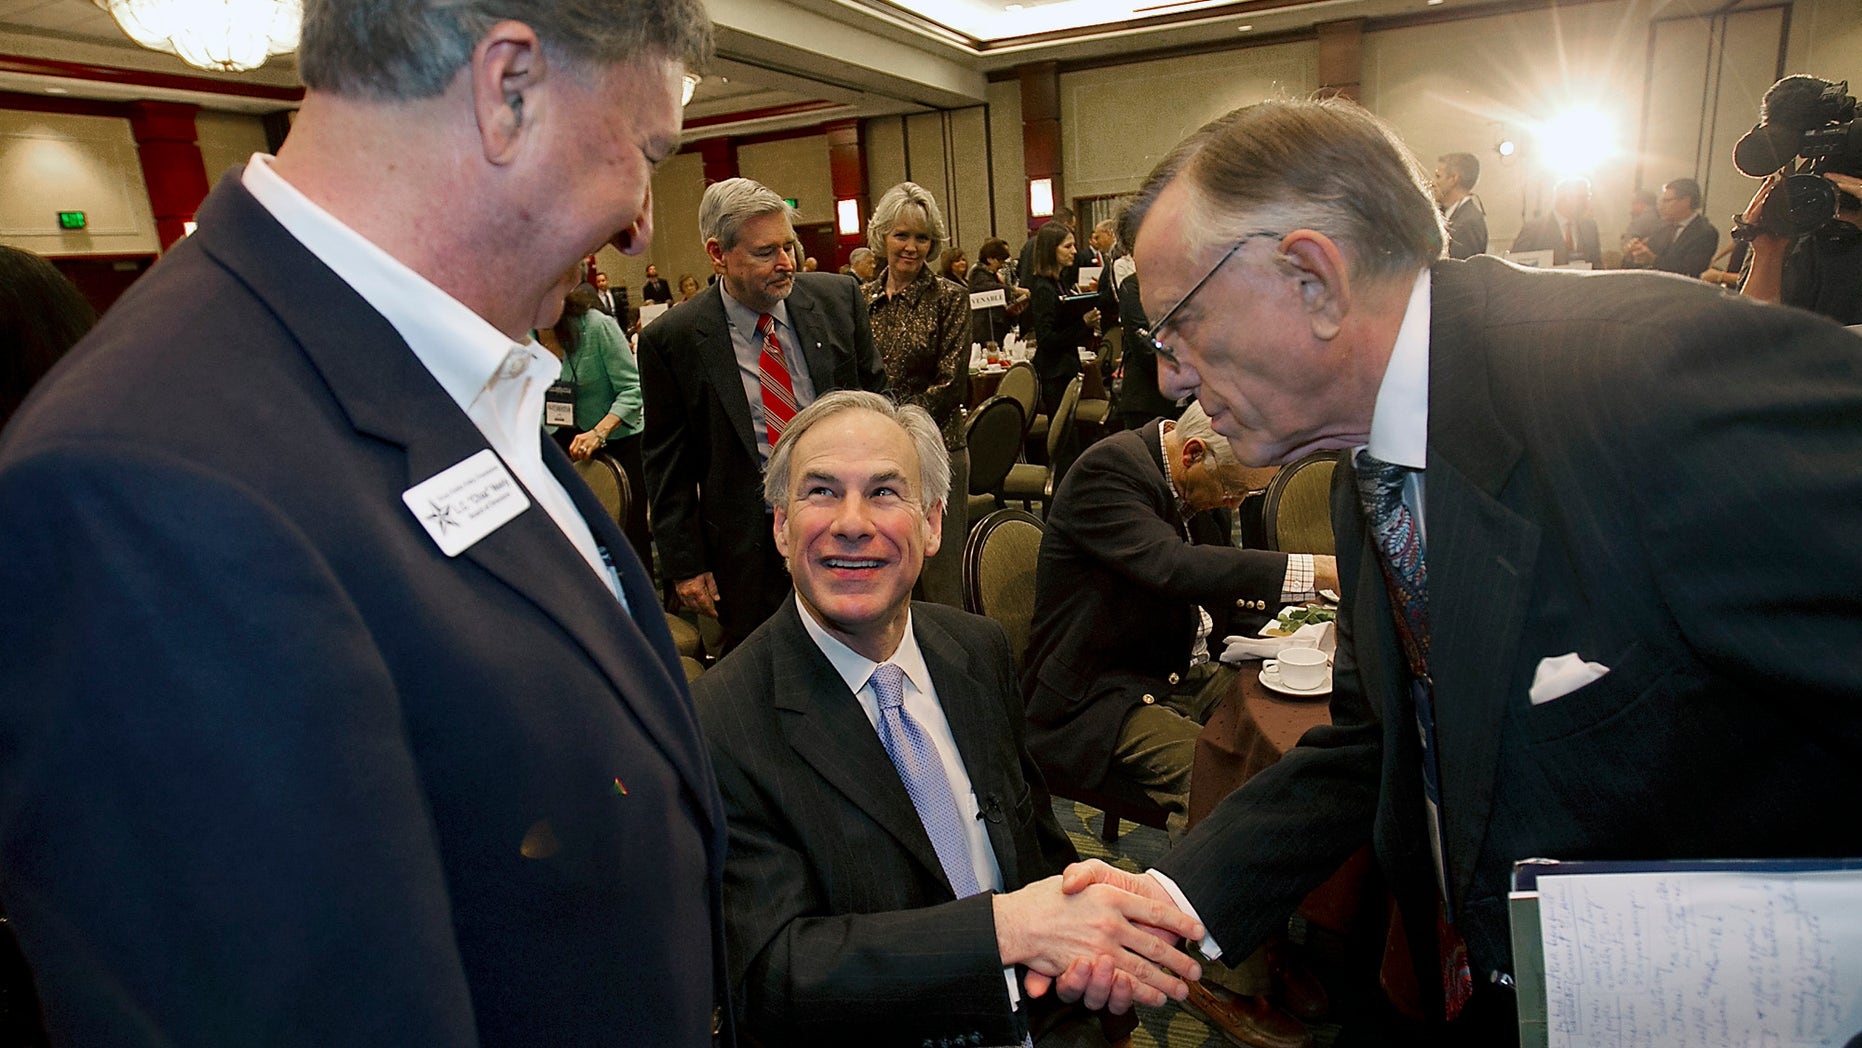 Texas AG Greg Abbott, Republican candidate for Governor, greets supporters on Jan. 10, 2014 in Austin, Texas.